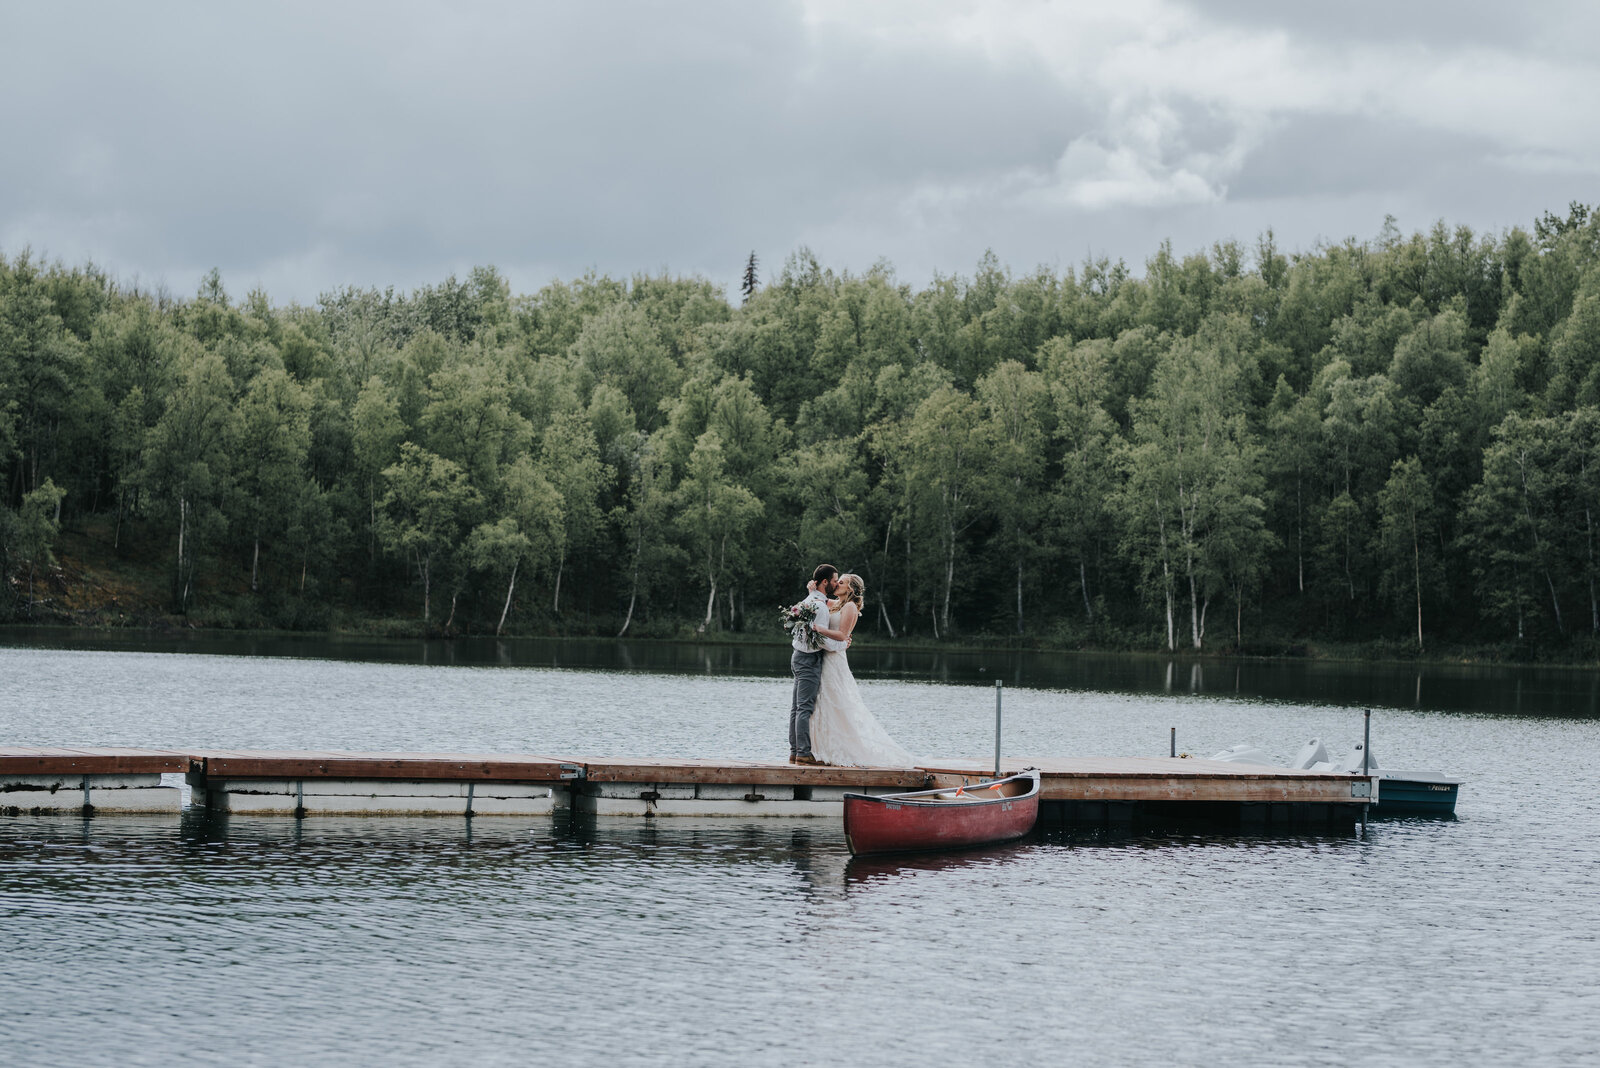 Wedding at Meier lake